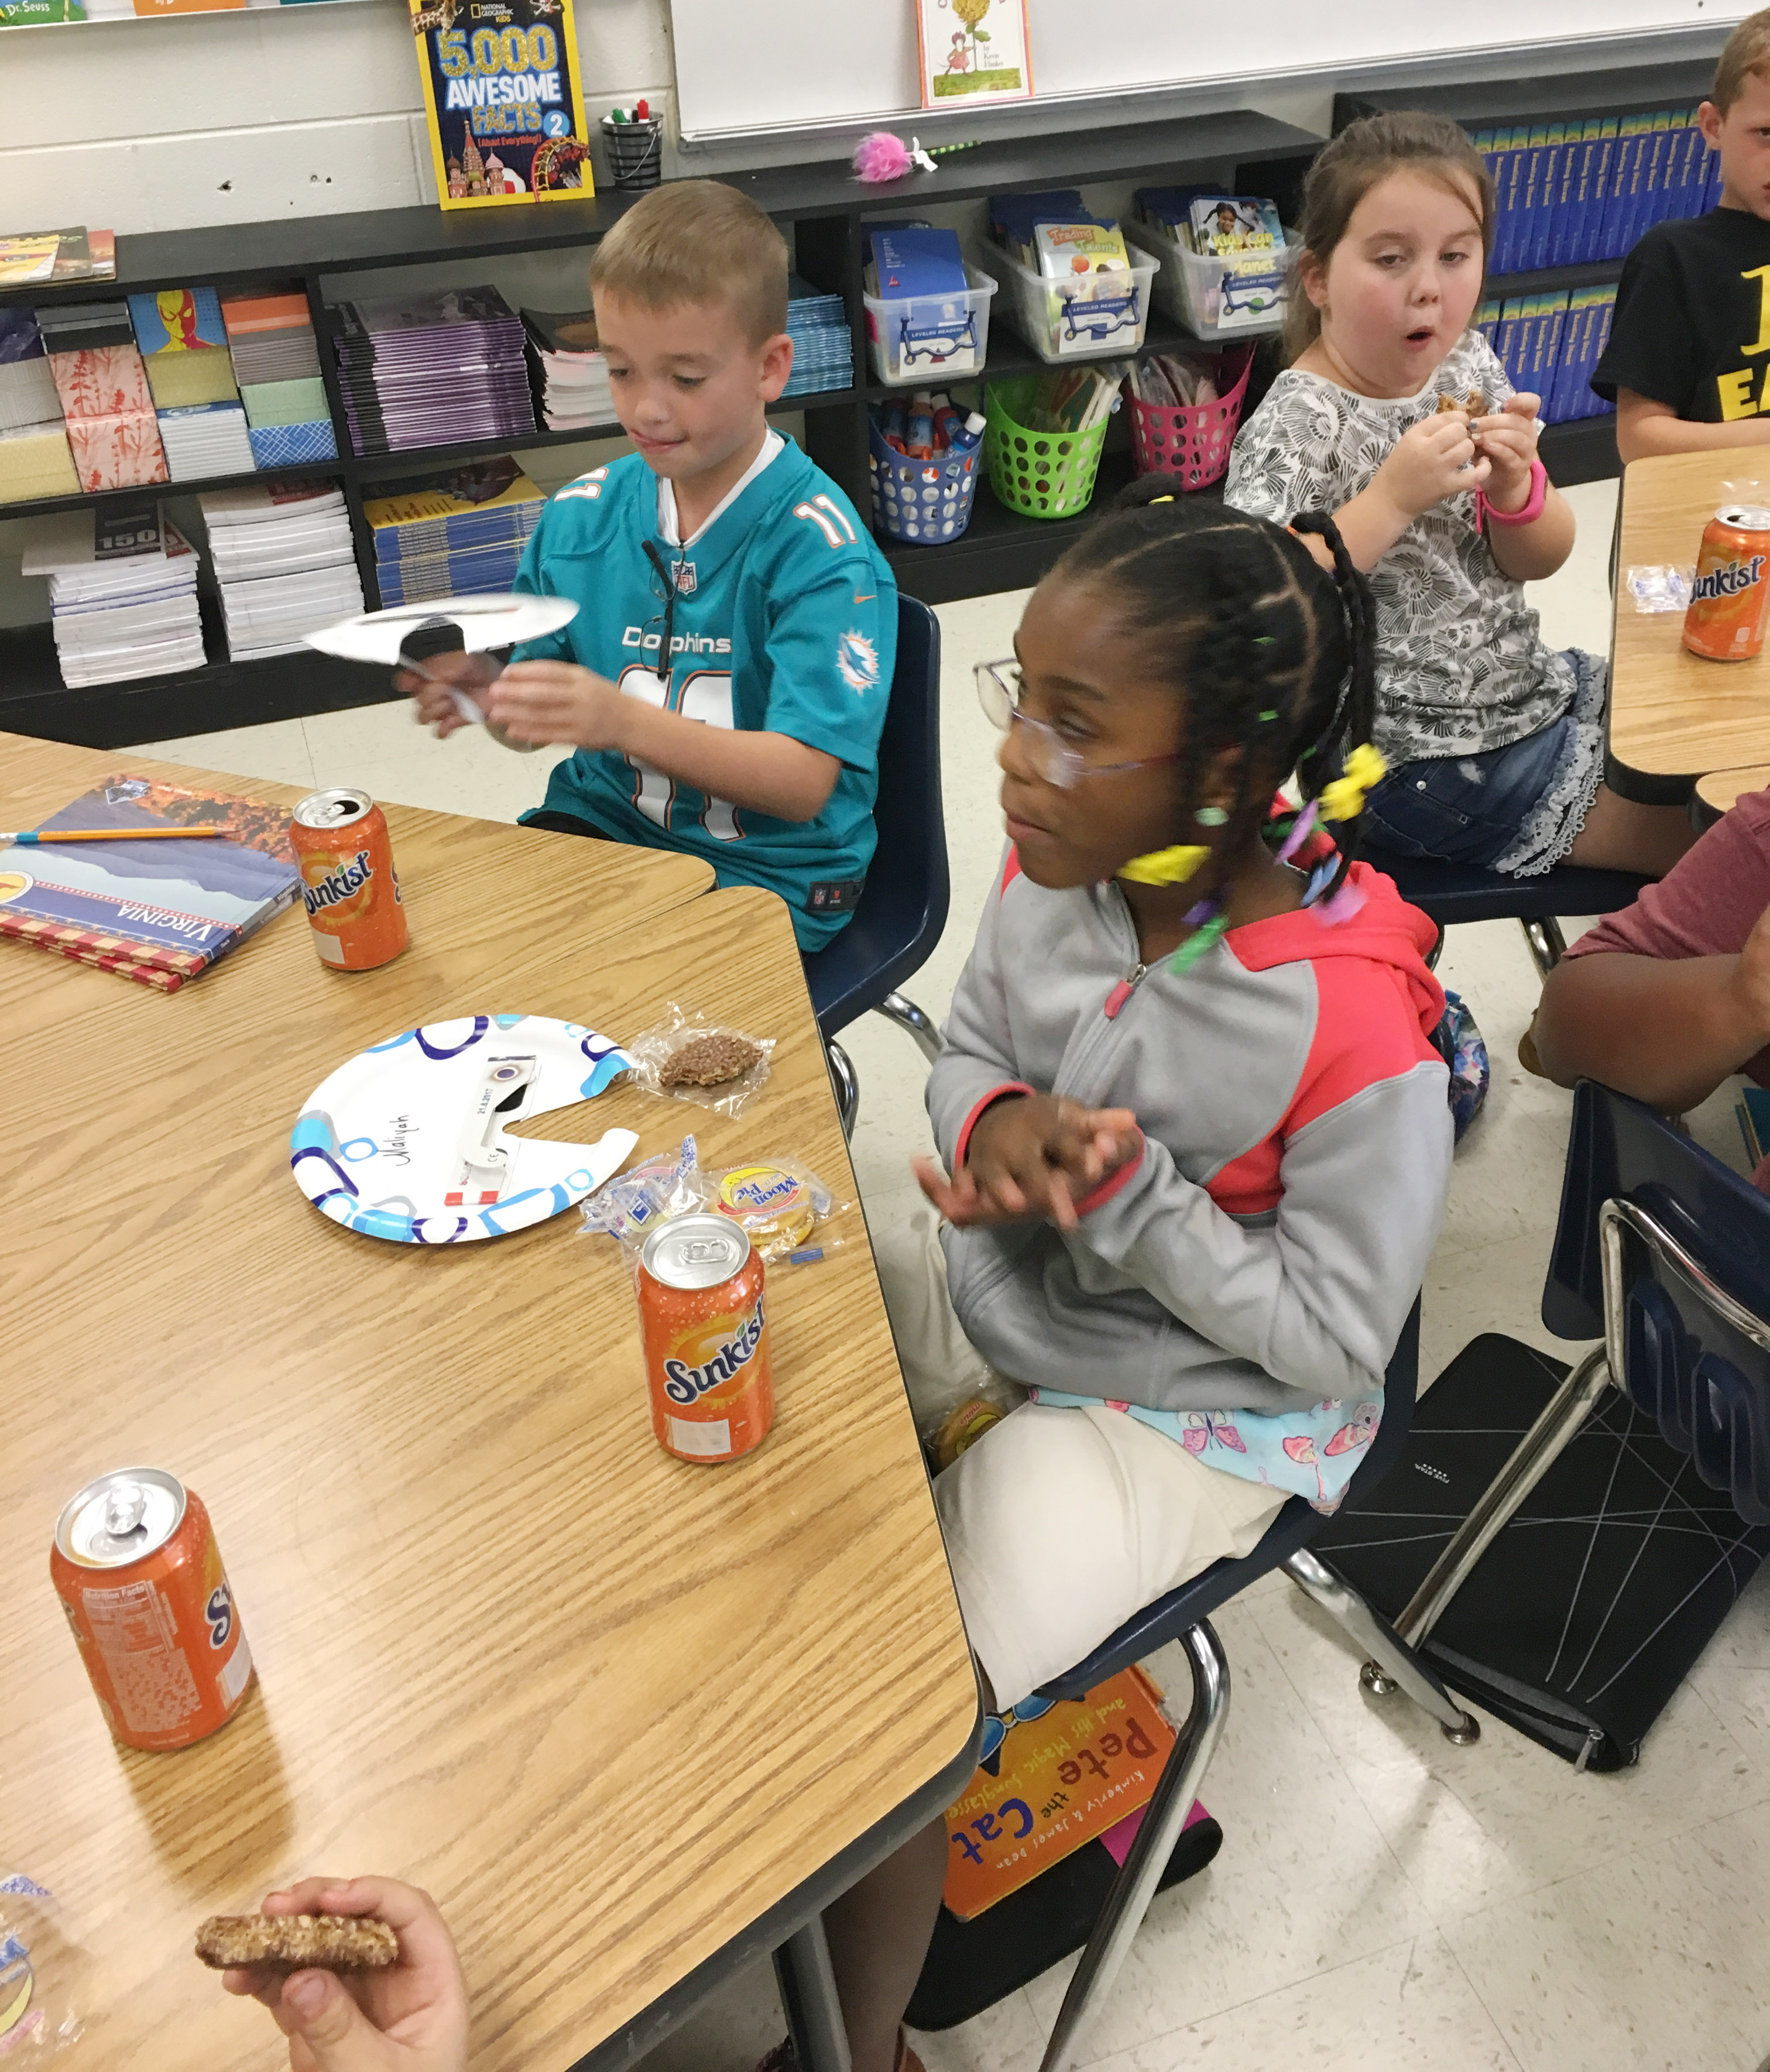 CES fourth-graders Cameron Estes, at left, and Maliyah Harris enjoy their Star Crunch and Moon Pie snacks.